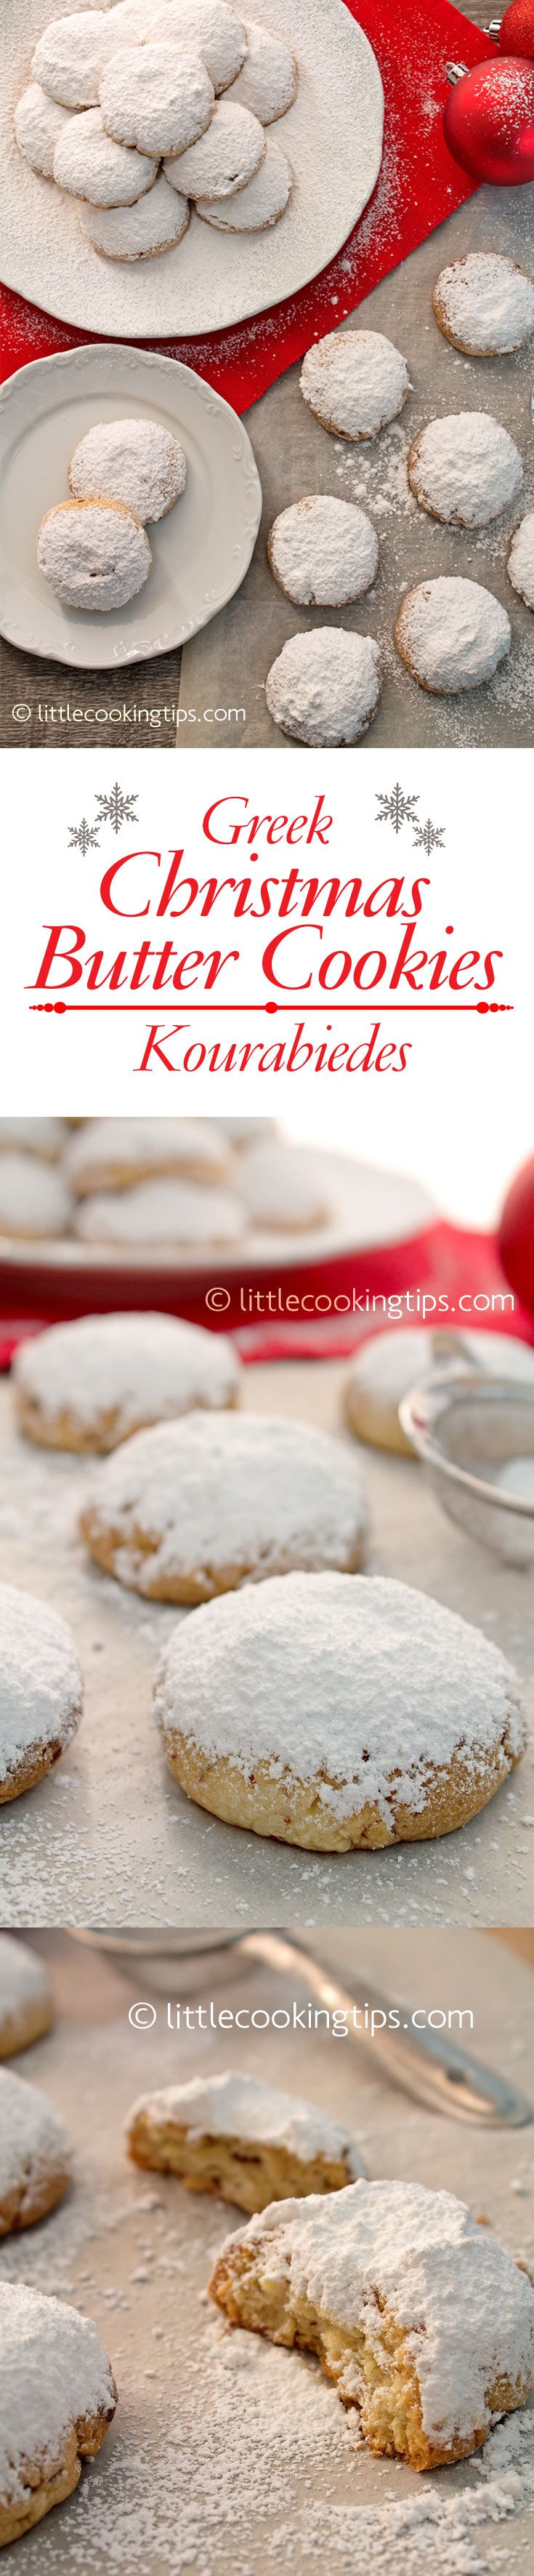 The 25 best greek christmas ideas on pinterest traditional the traditional recipe for greek christmas butter cookies kourabiedes those cookies are served throughout forumfinder Gallery